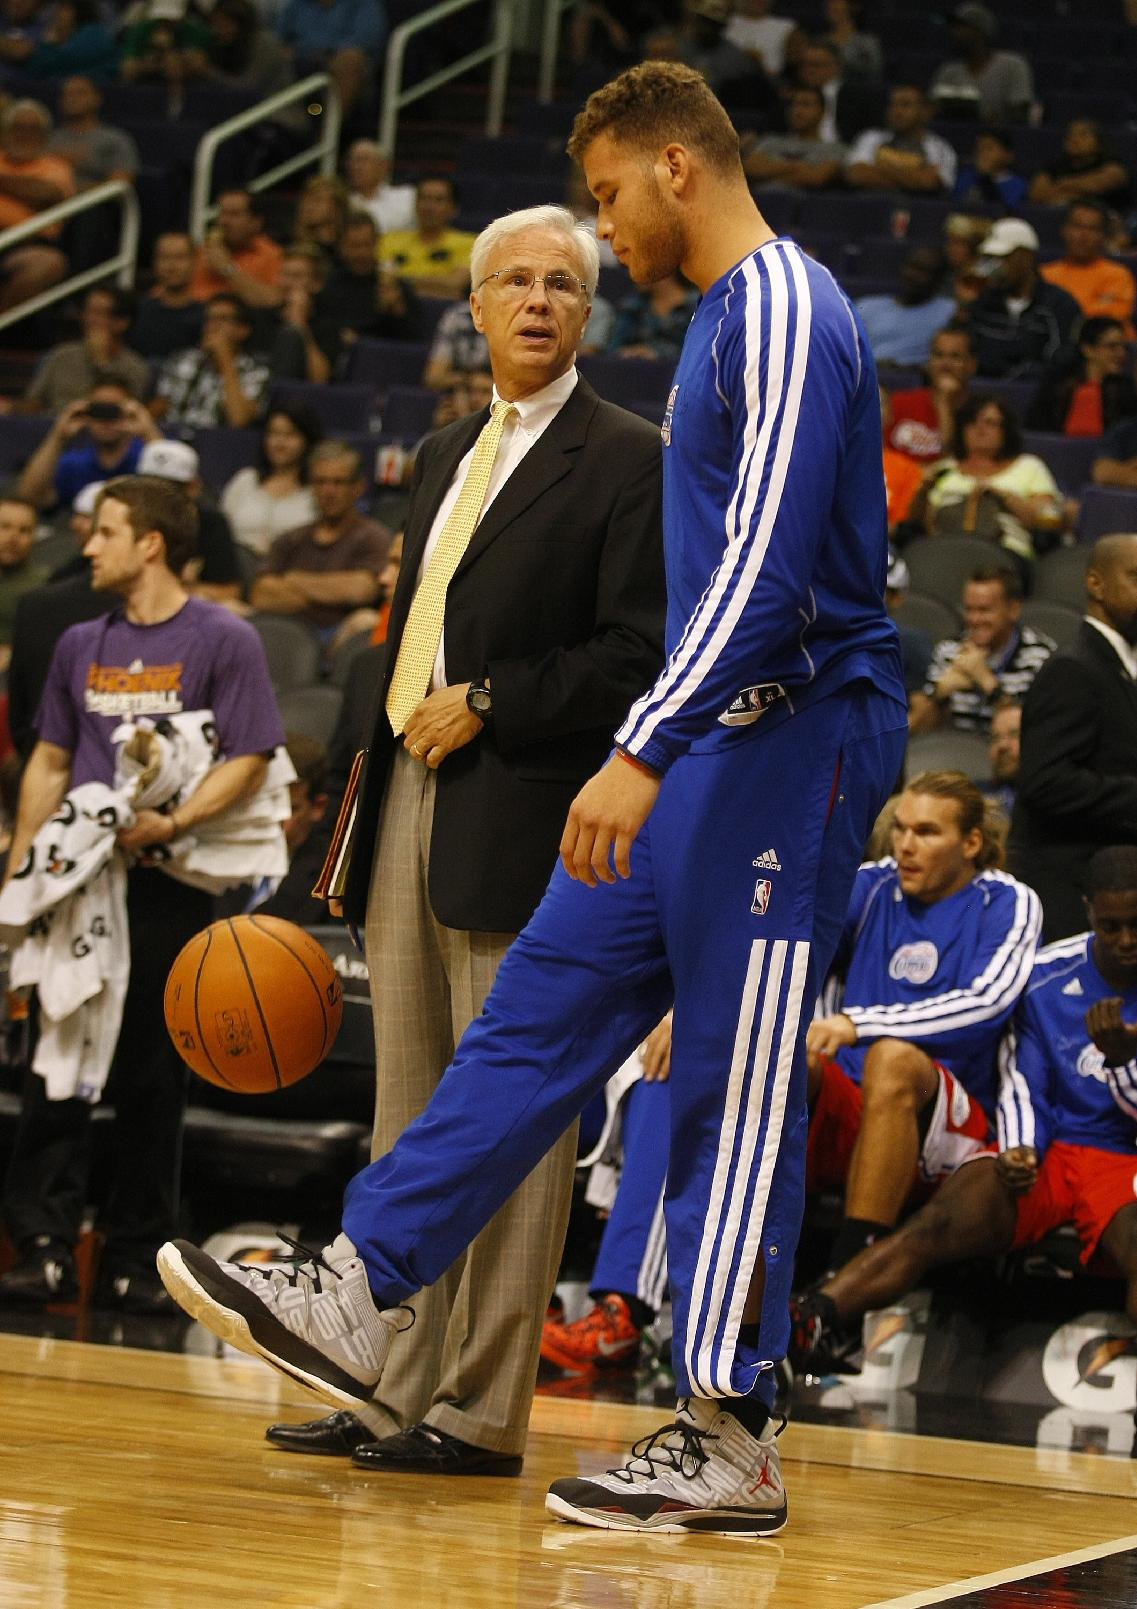 Los Angeles Clippers power forward Blake Griffin (32) juggles the basketball with his feet in the third quarter during an NBA preseason basketball game against the Phoenix Suns on Tuesday, Oct. 15, 2013, in Phoenix. Griffen did not play against the Suns